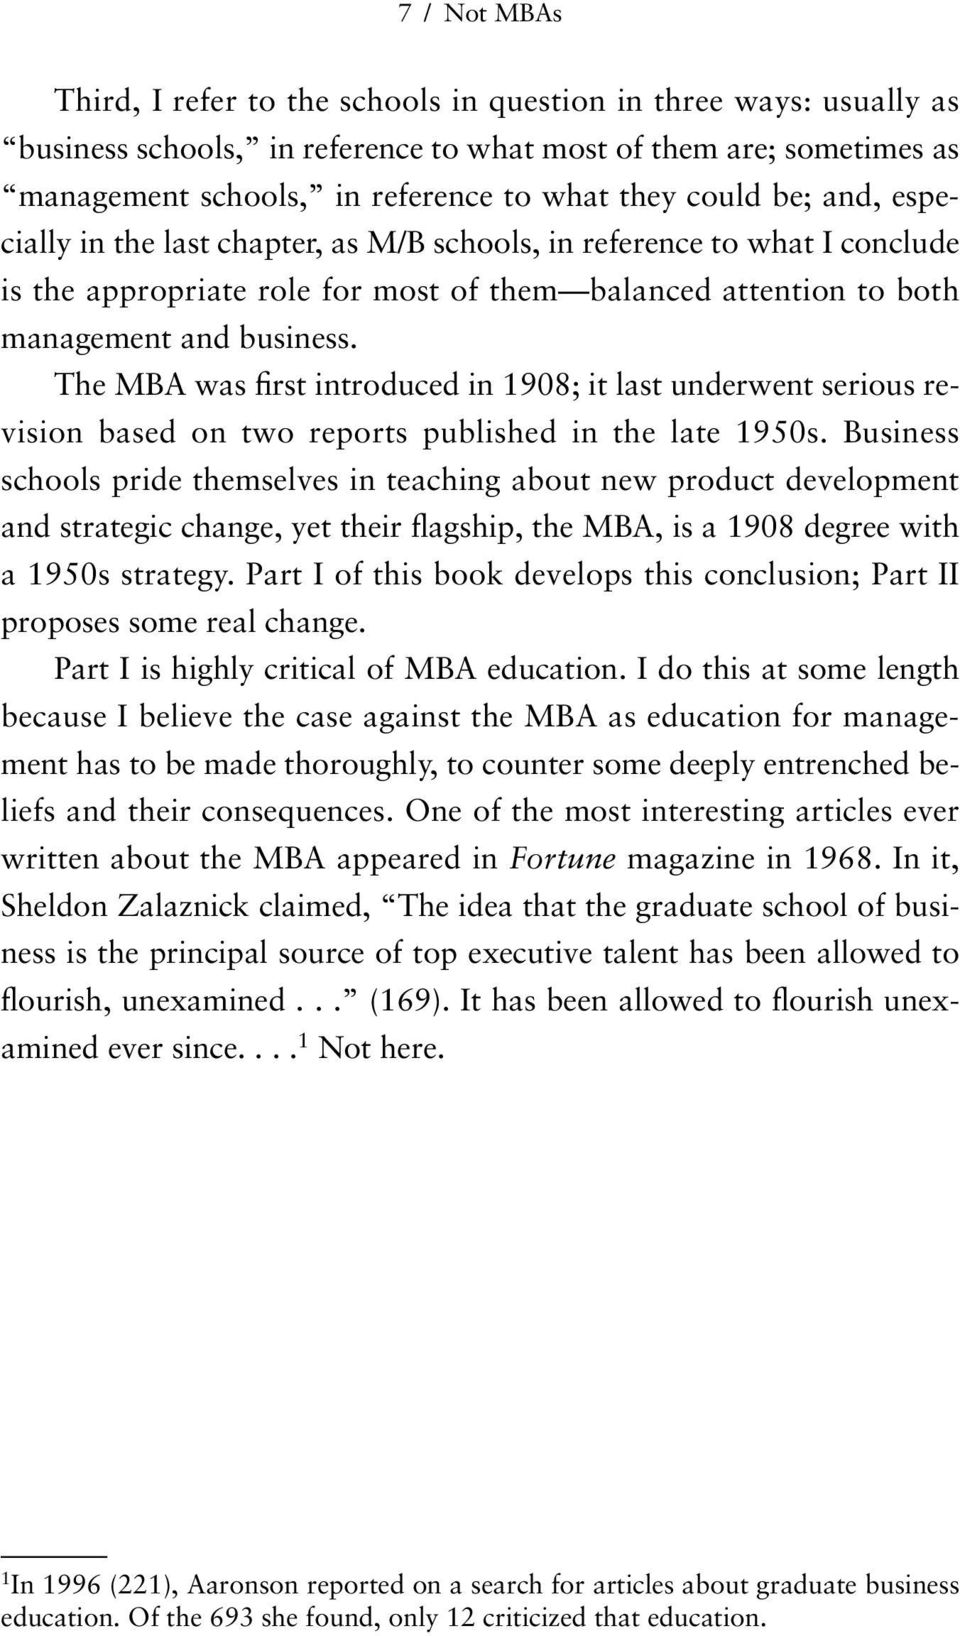 The MBA was first introduced in 1908; it last underwent serious revision based on two reports published in the late 1950s.